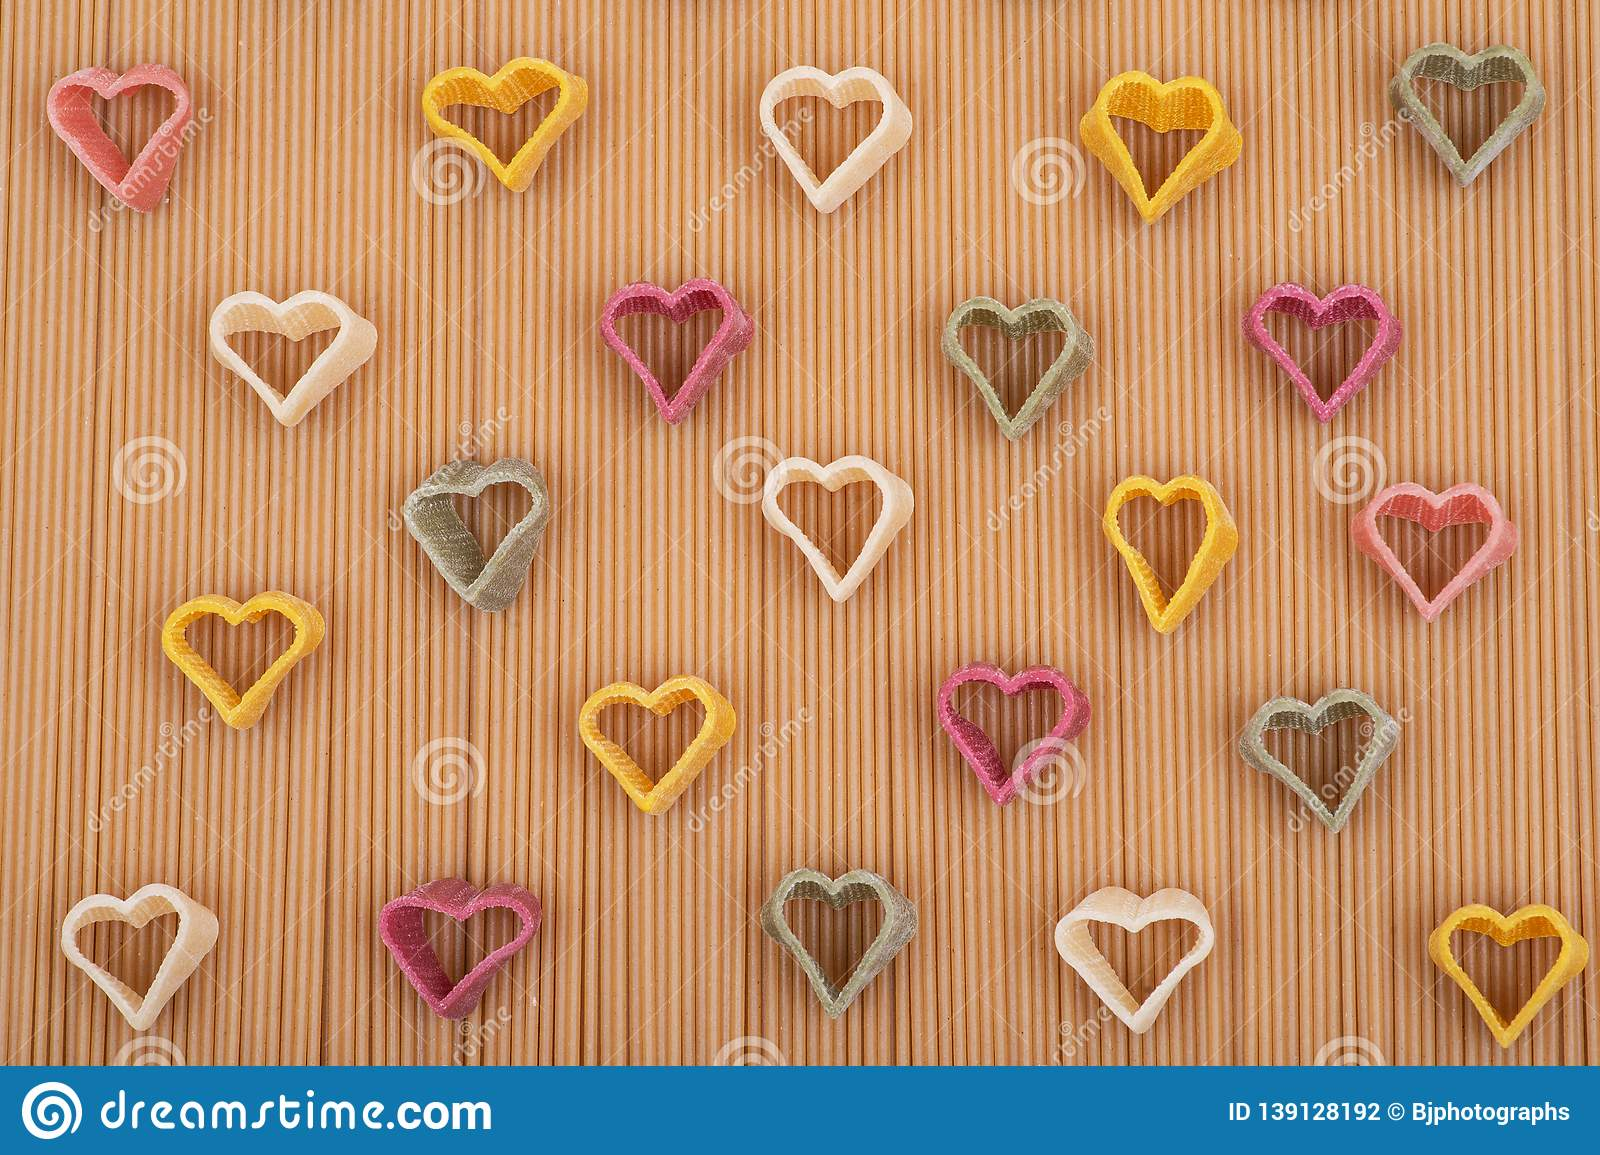 a75b3bd0ab1888 Durum wheat semolina heart-shaped 5 flavors pasta with vegetables arranged  on a brown rice spaghetti pasta background. Valentine`s Day.